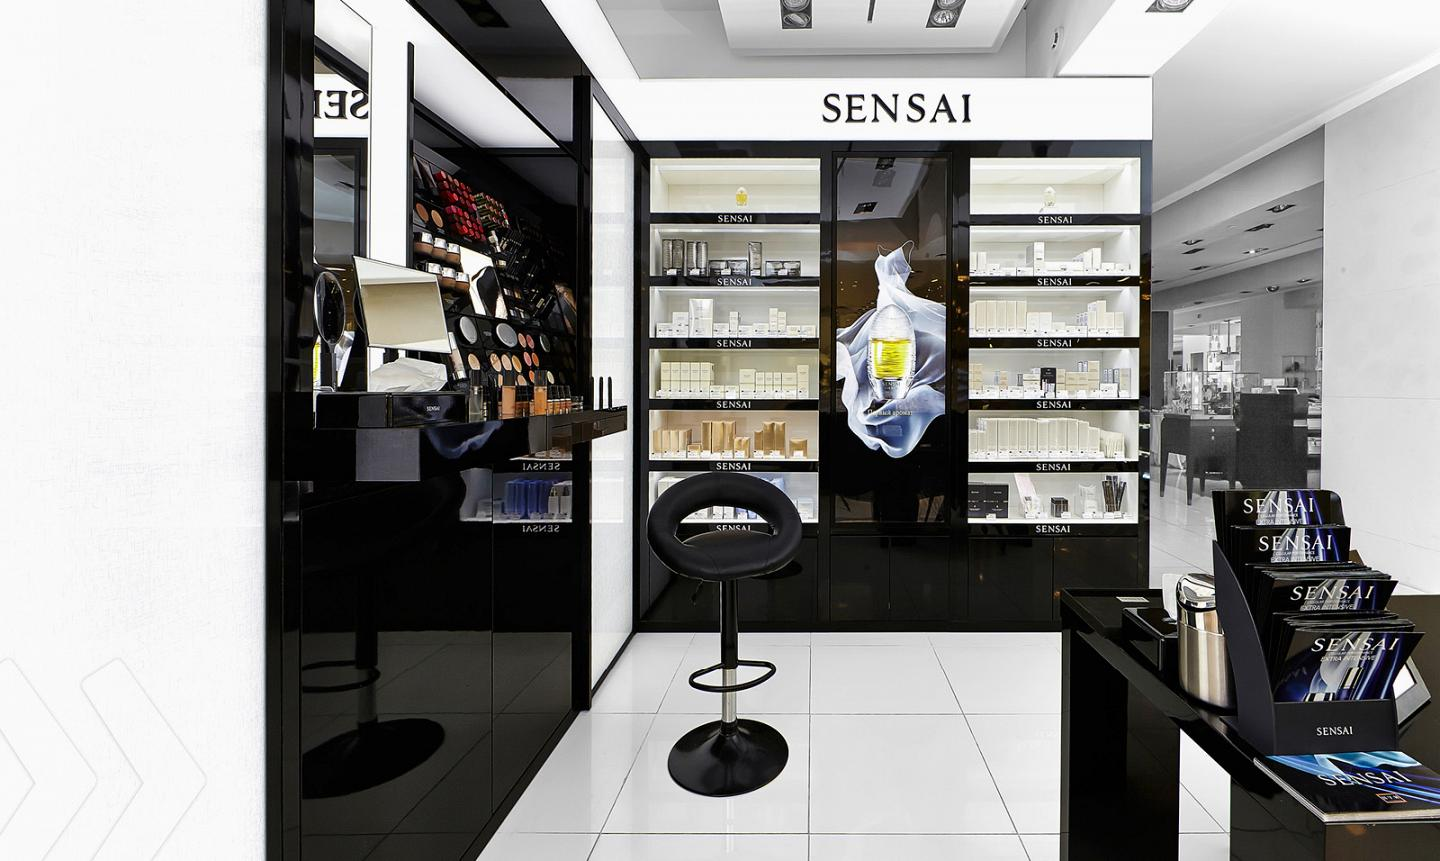 Kanebo Sensai Shop in Shop left